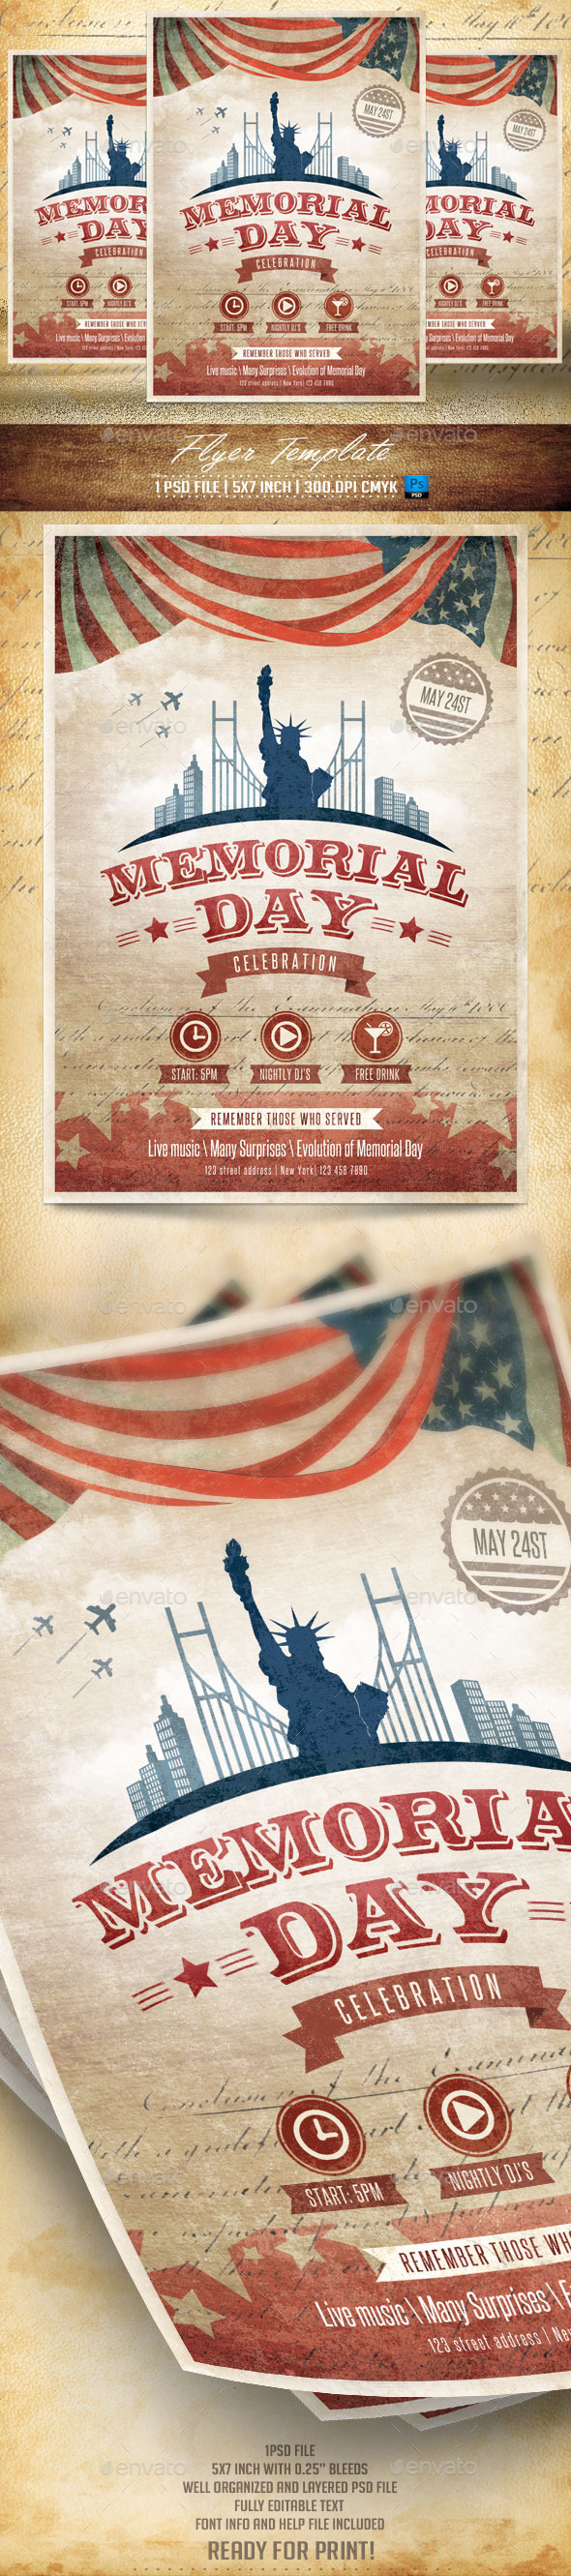 GraphicRiver Memorial Day Flyer Template v2 11379231